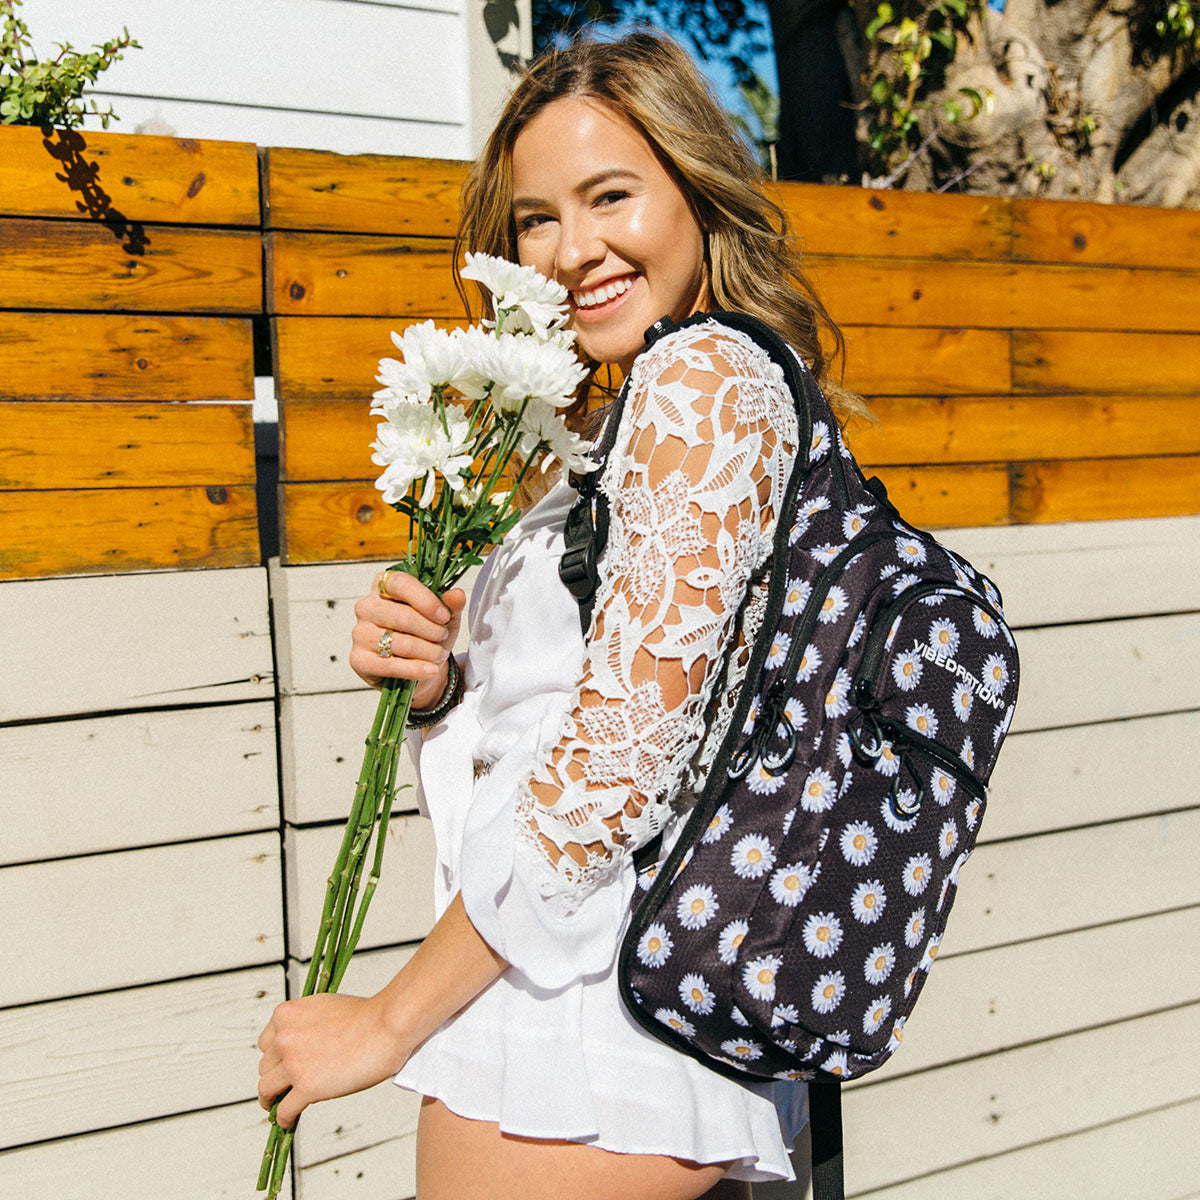 Female wearing black daisy water backpack